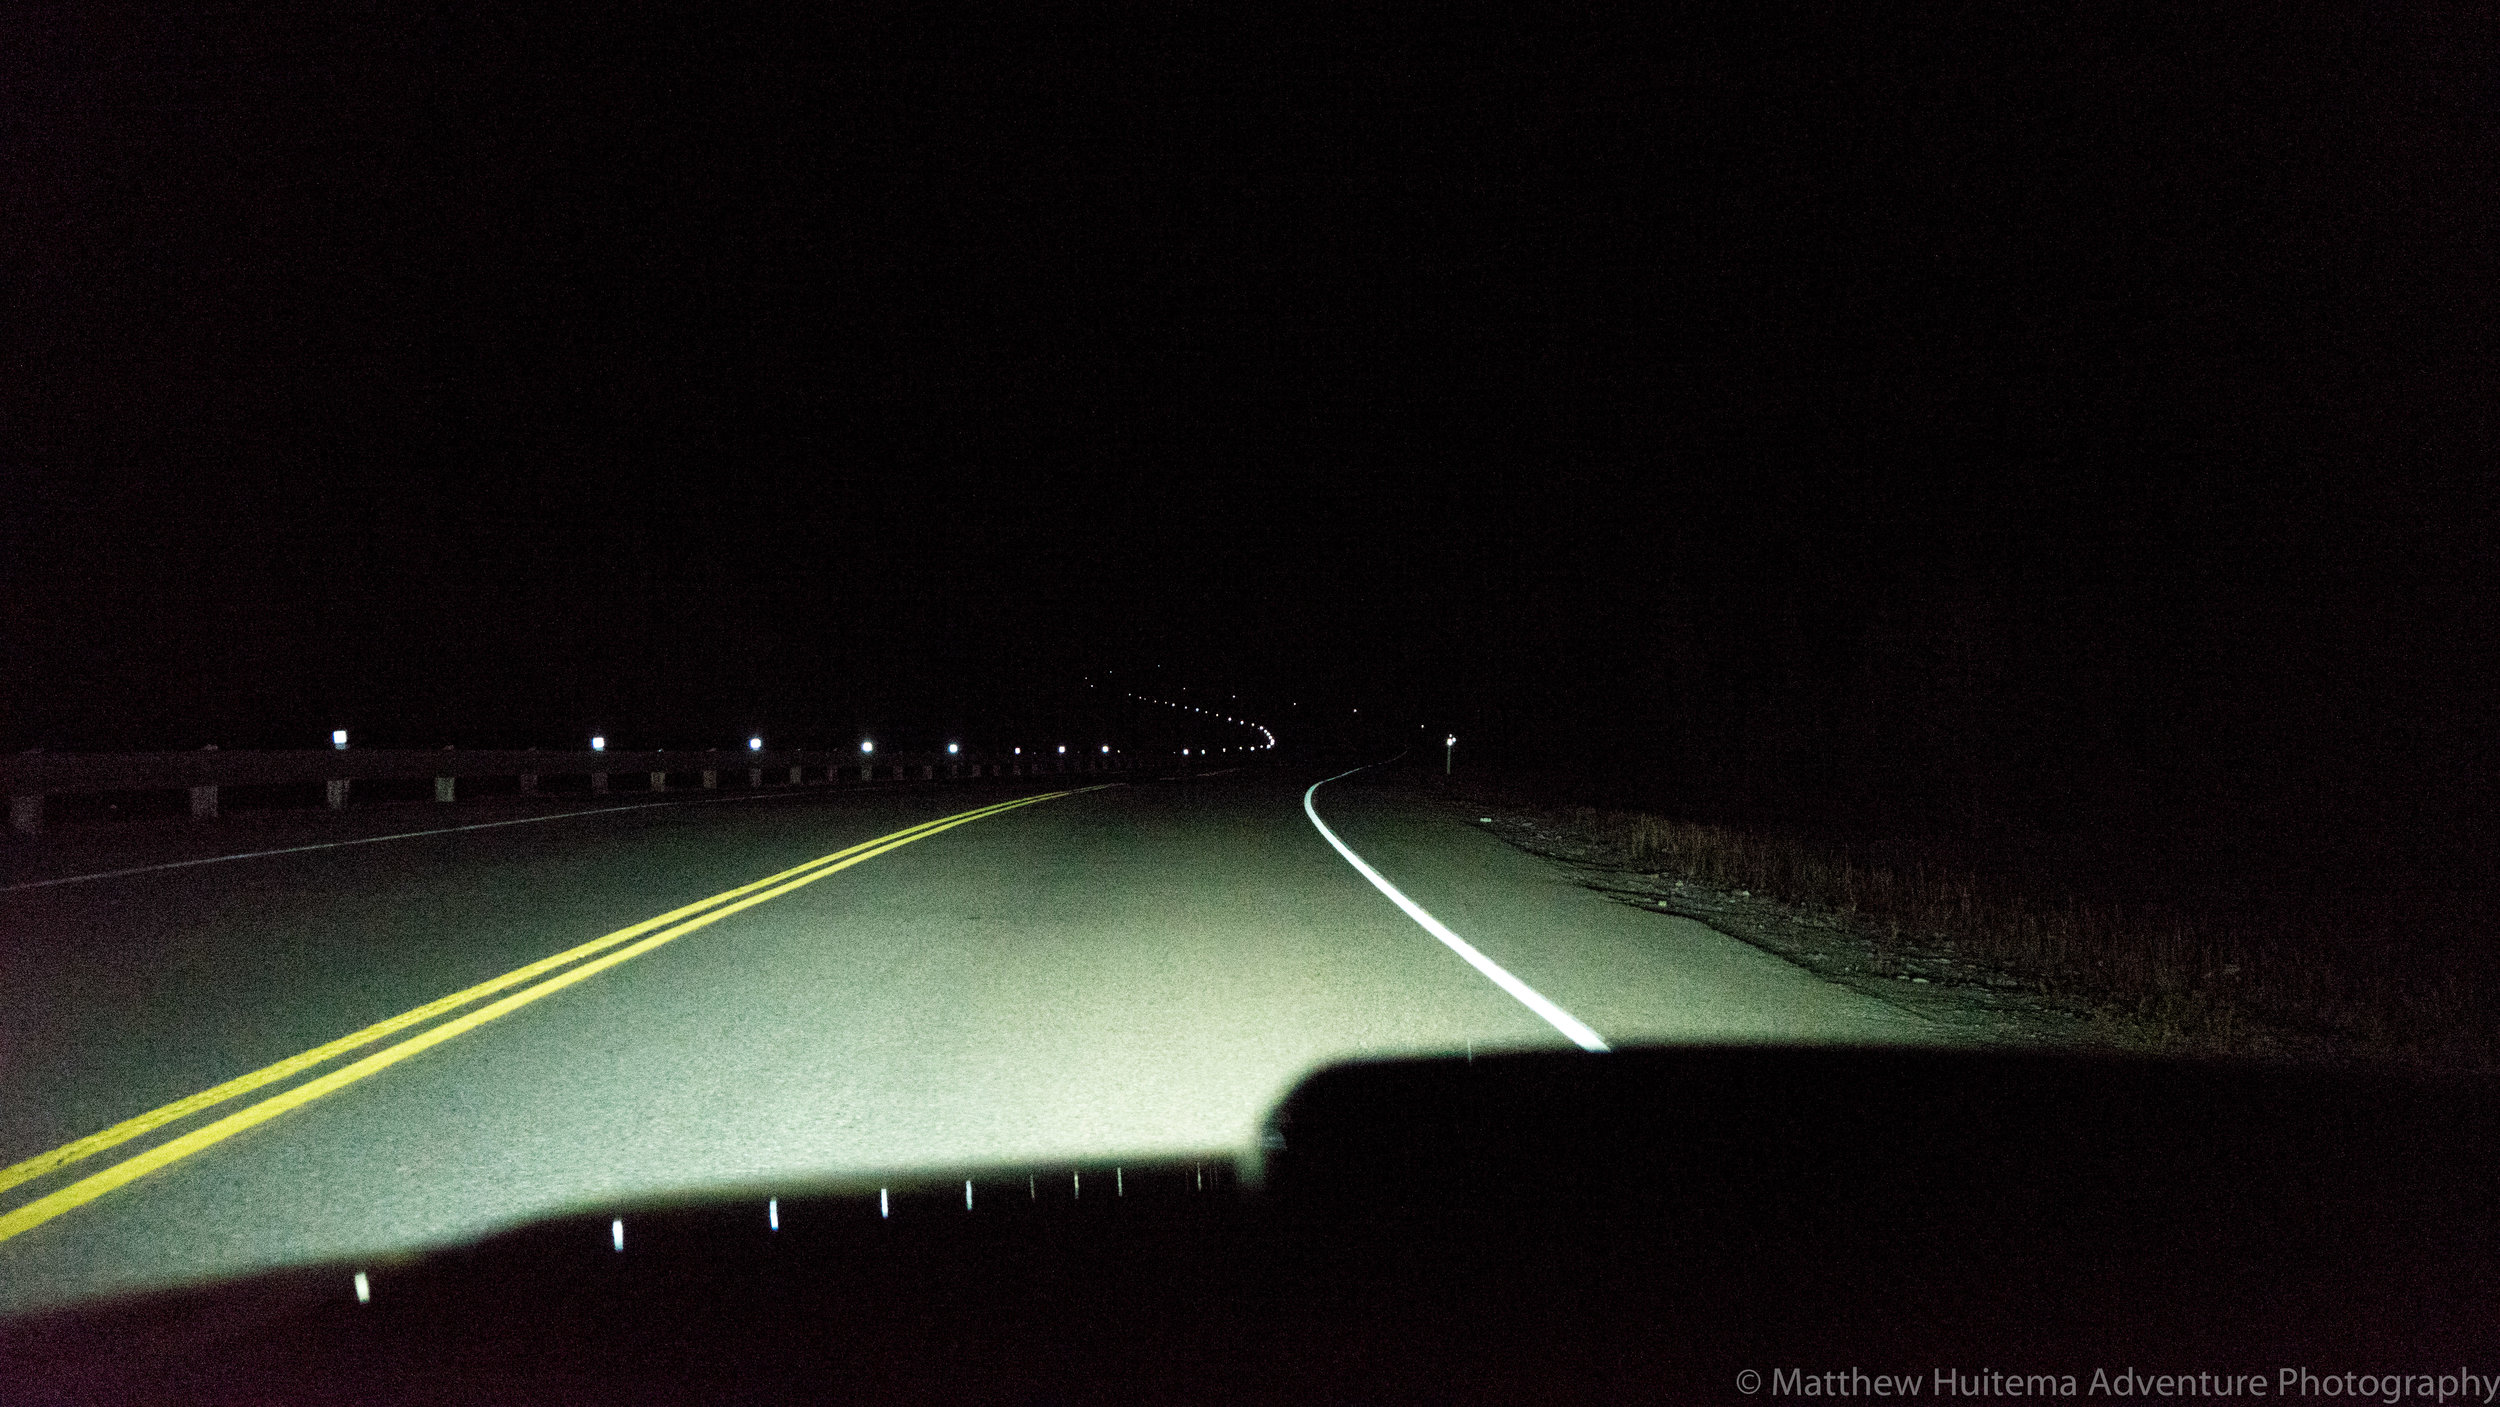 The pitch black drive home (Don't worry, I stopped driving to take this photo!)